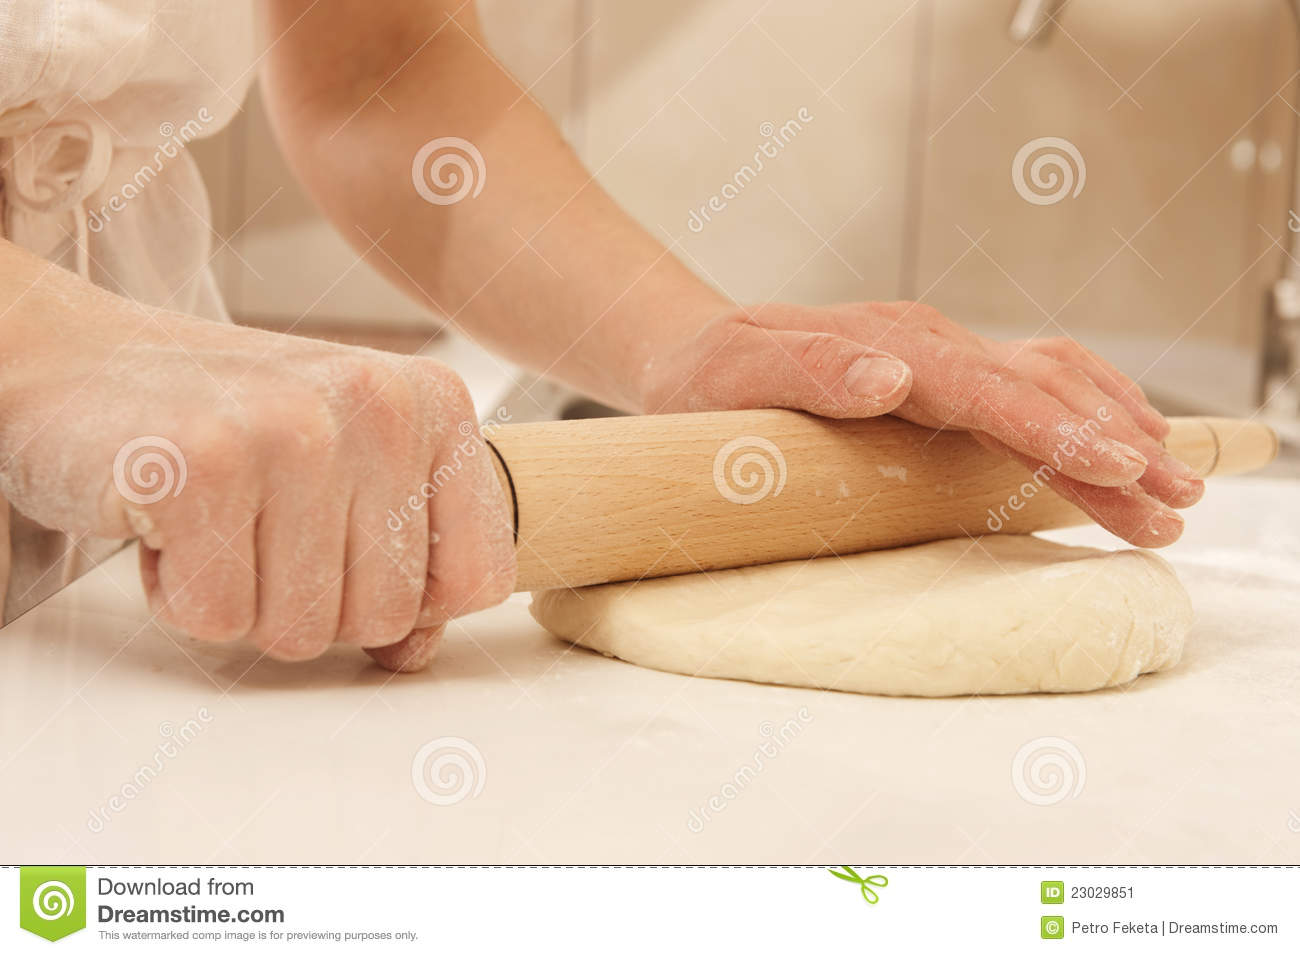 Pizza Roller Rolling Dough Stock Image. Image Of Pizza, Dough, Closeup